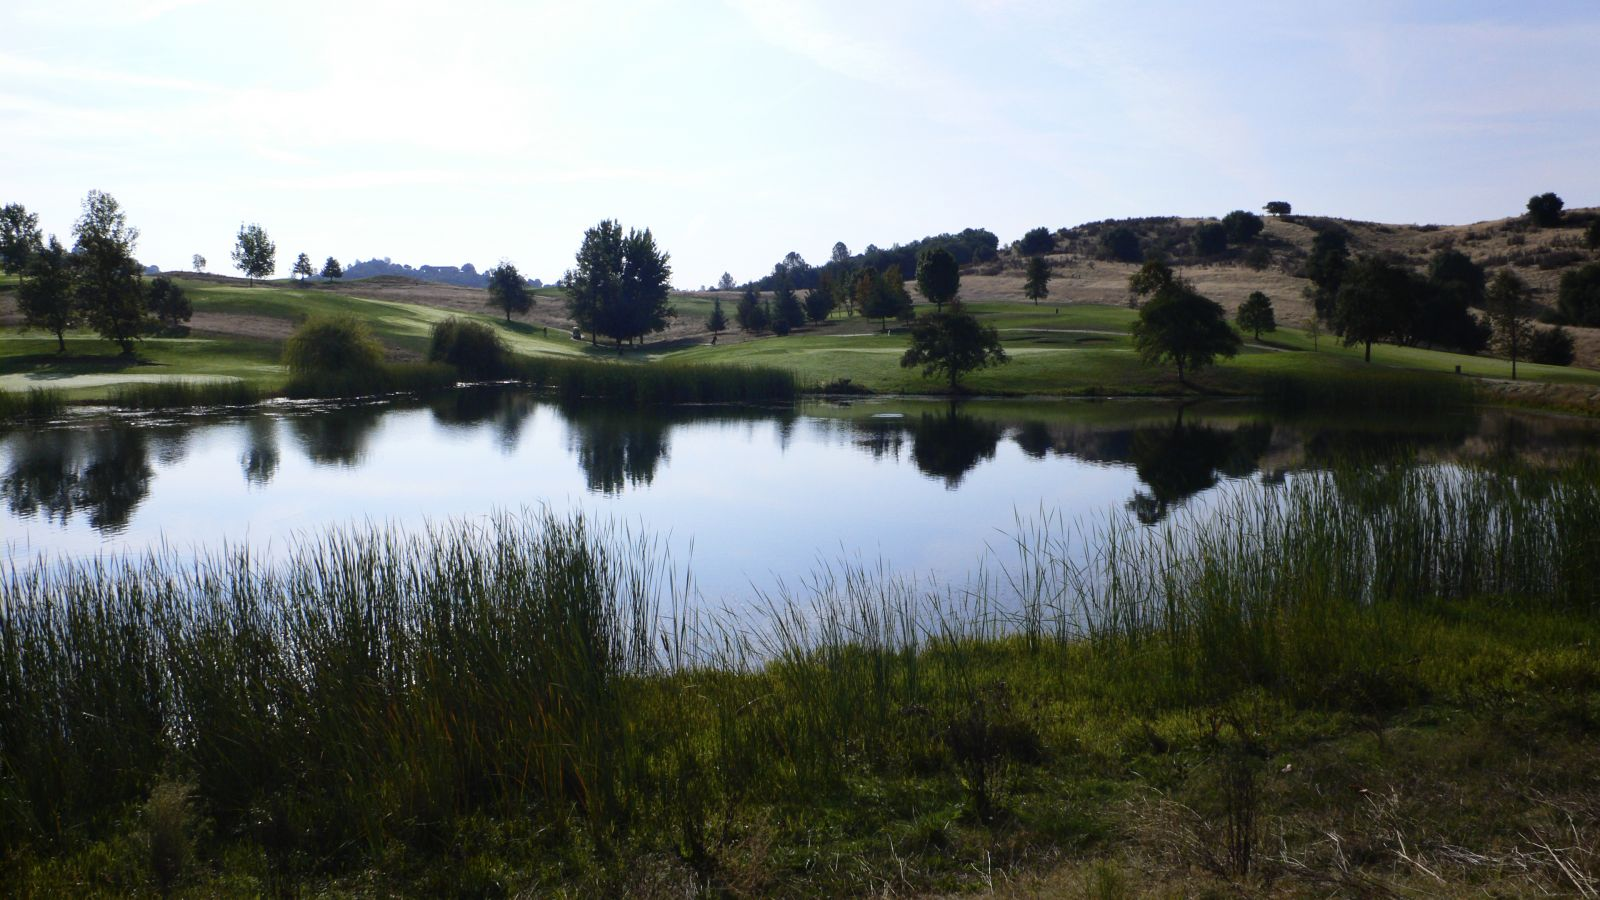 Mountain Springs Hotel Office Manager Mail: Mountain Springs Golf & Country Club